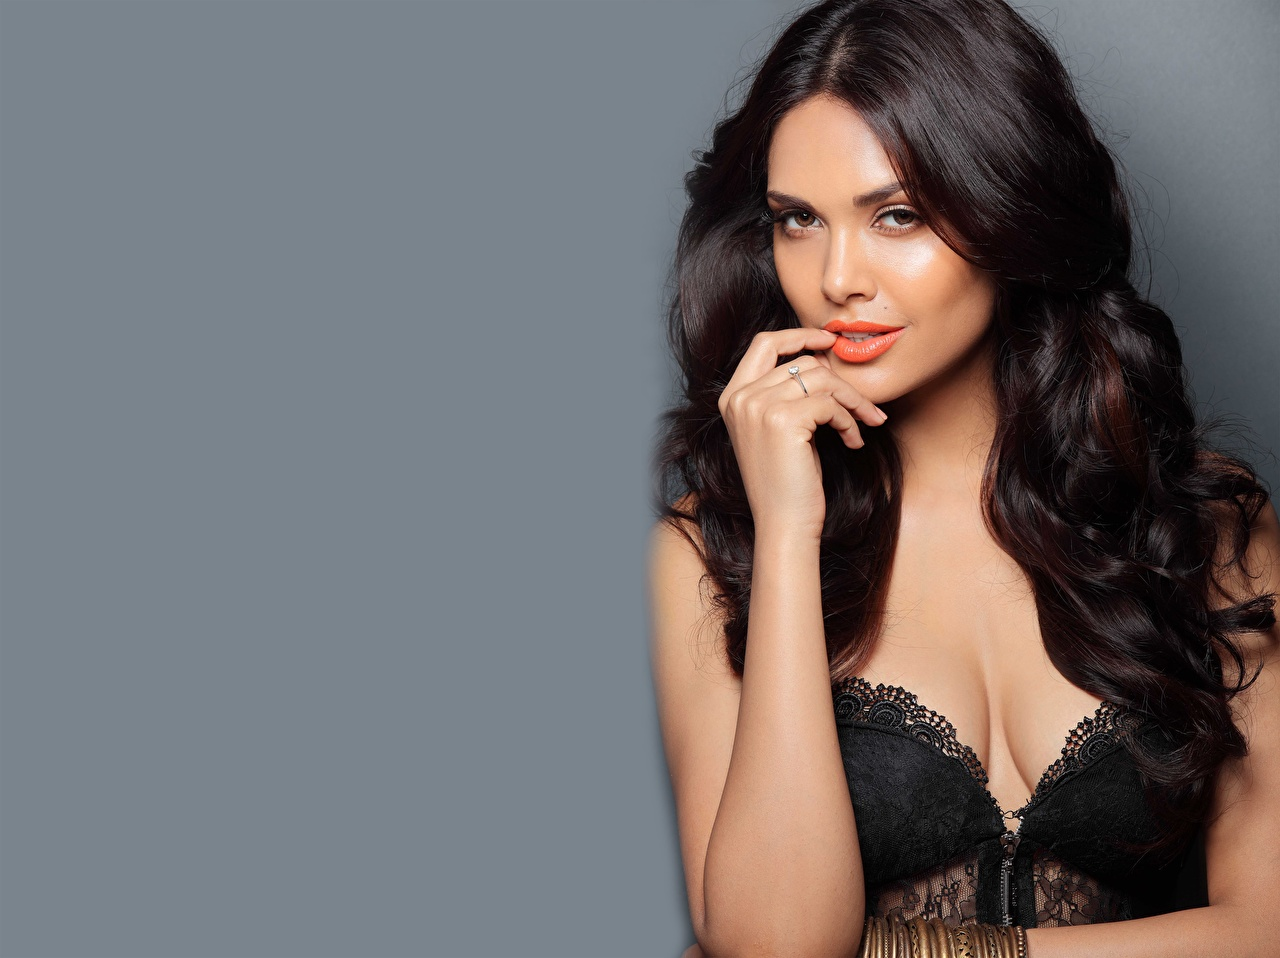 Images Indian Brunette girl Esha Gupta young woman Hands Staring Celebrities Gray background Girls female Glance